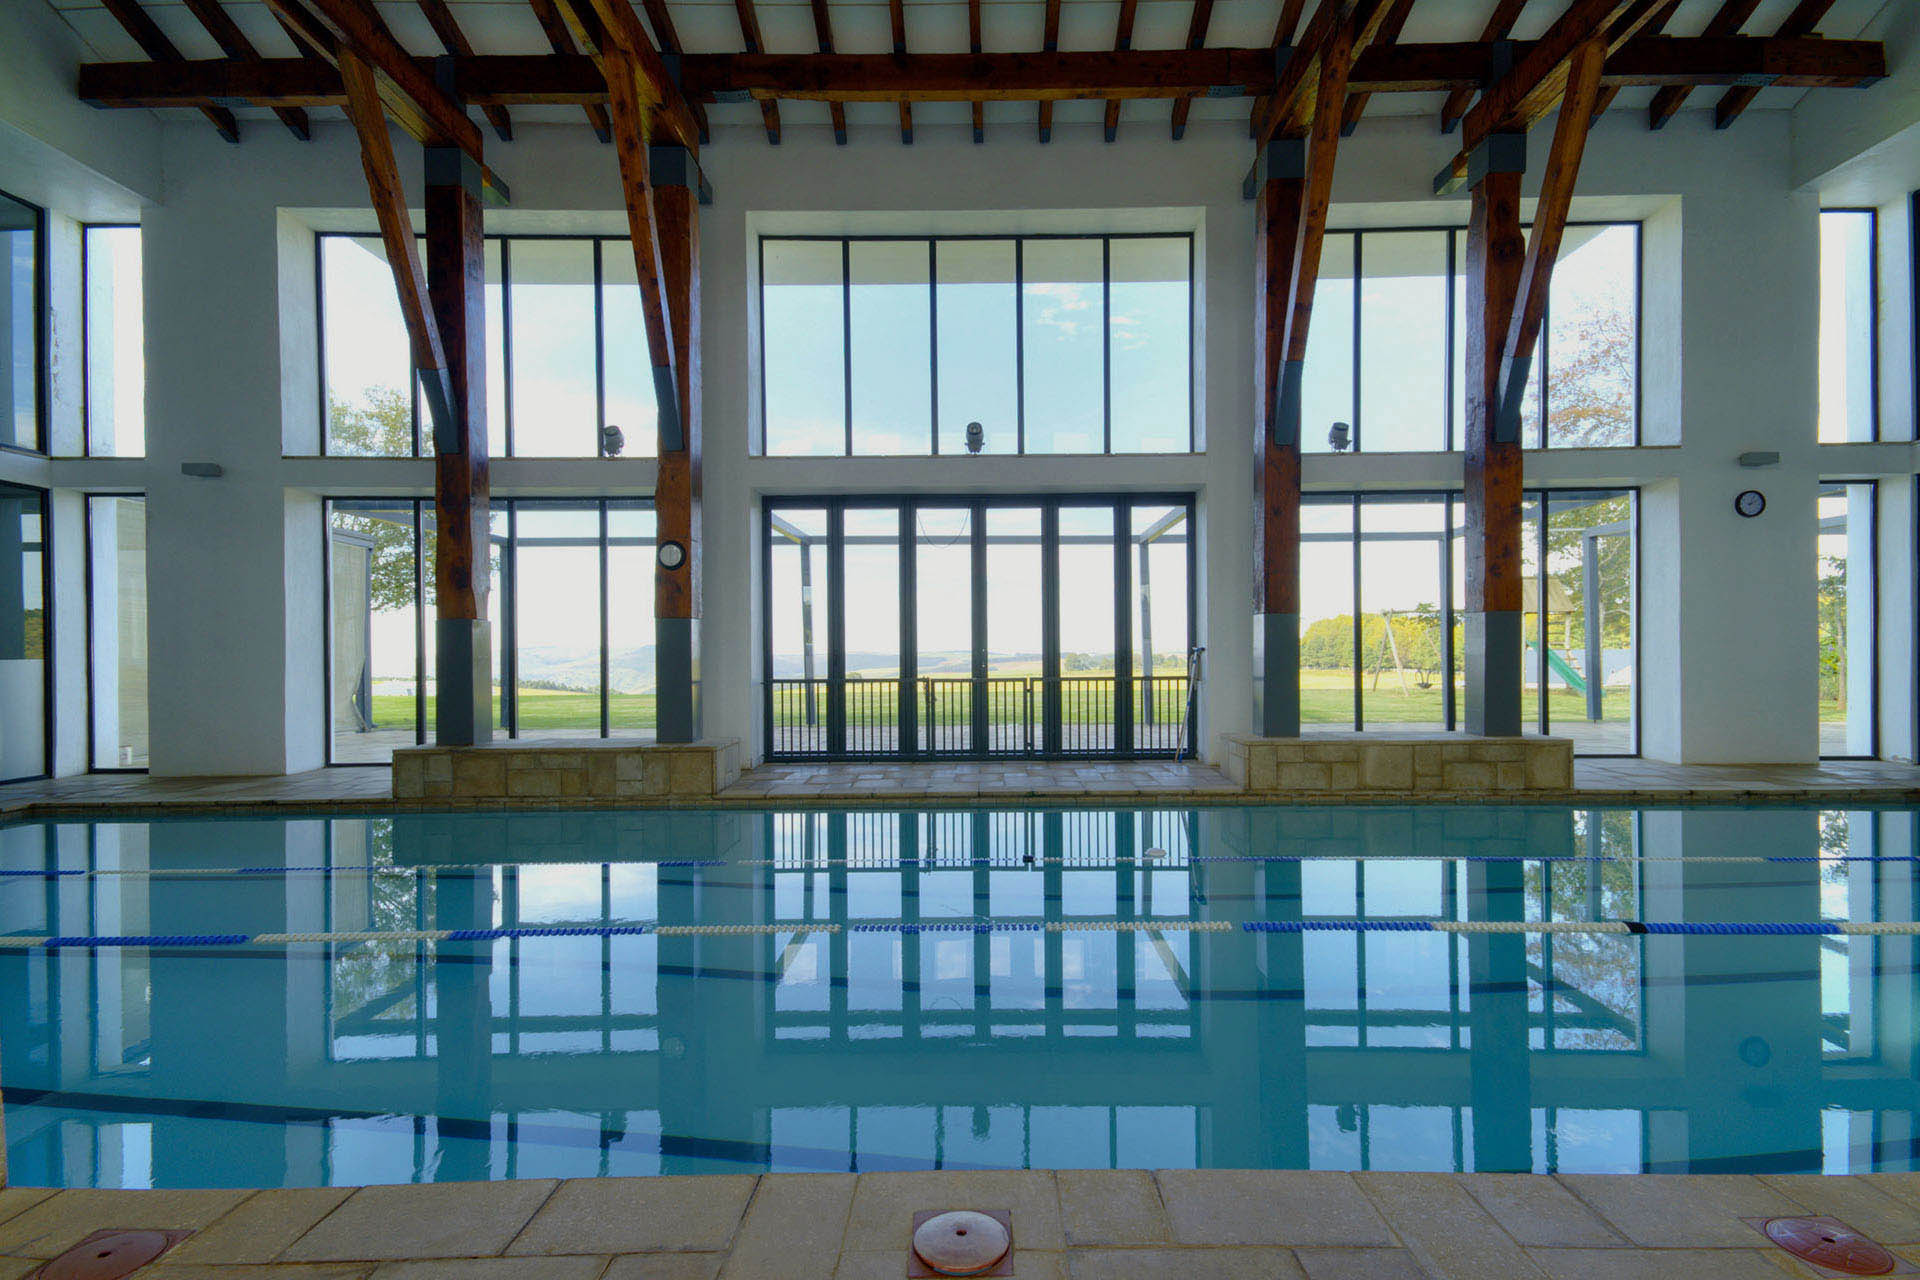 gym-garlington-estate-luxury-country-development-hilton-midlands-meander-countryside-contemporary-lifestyle-kzn